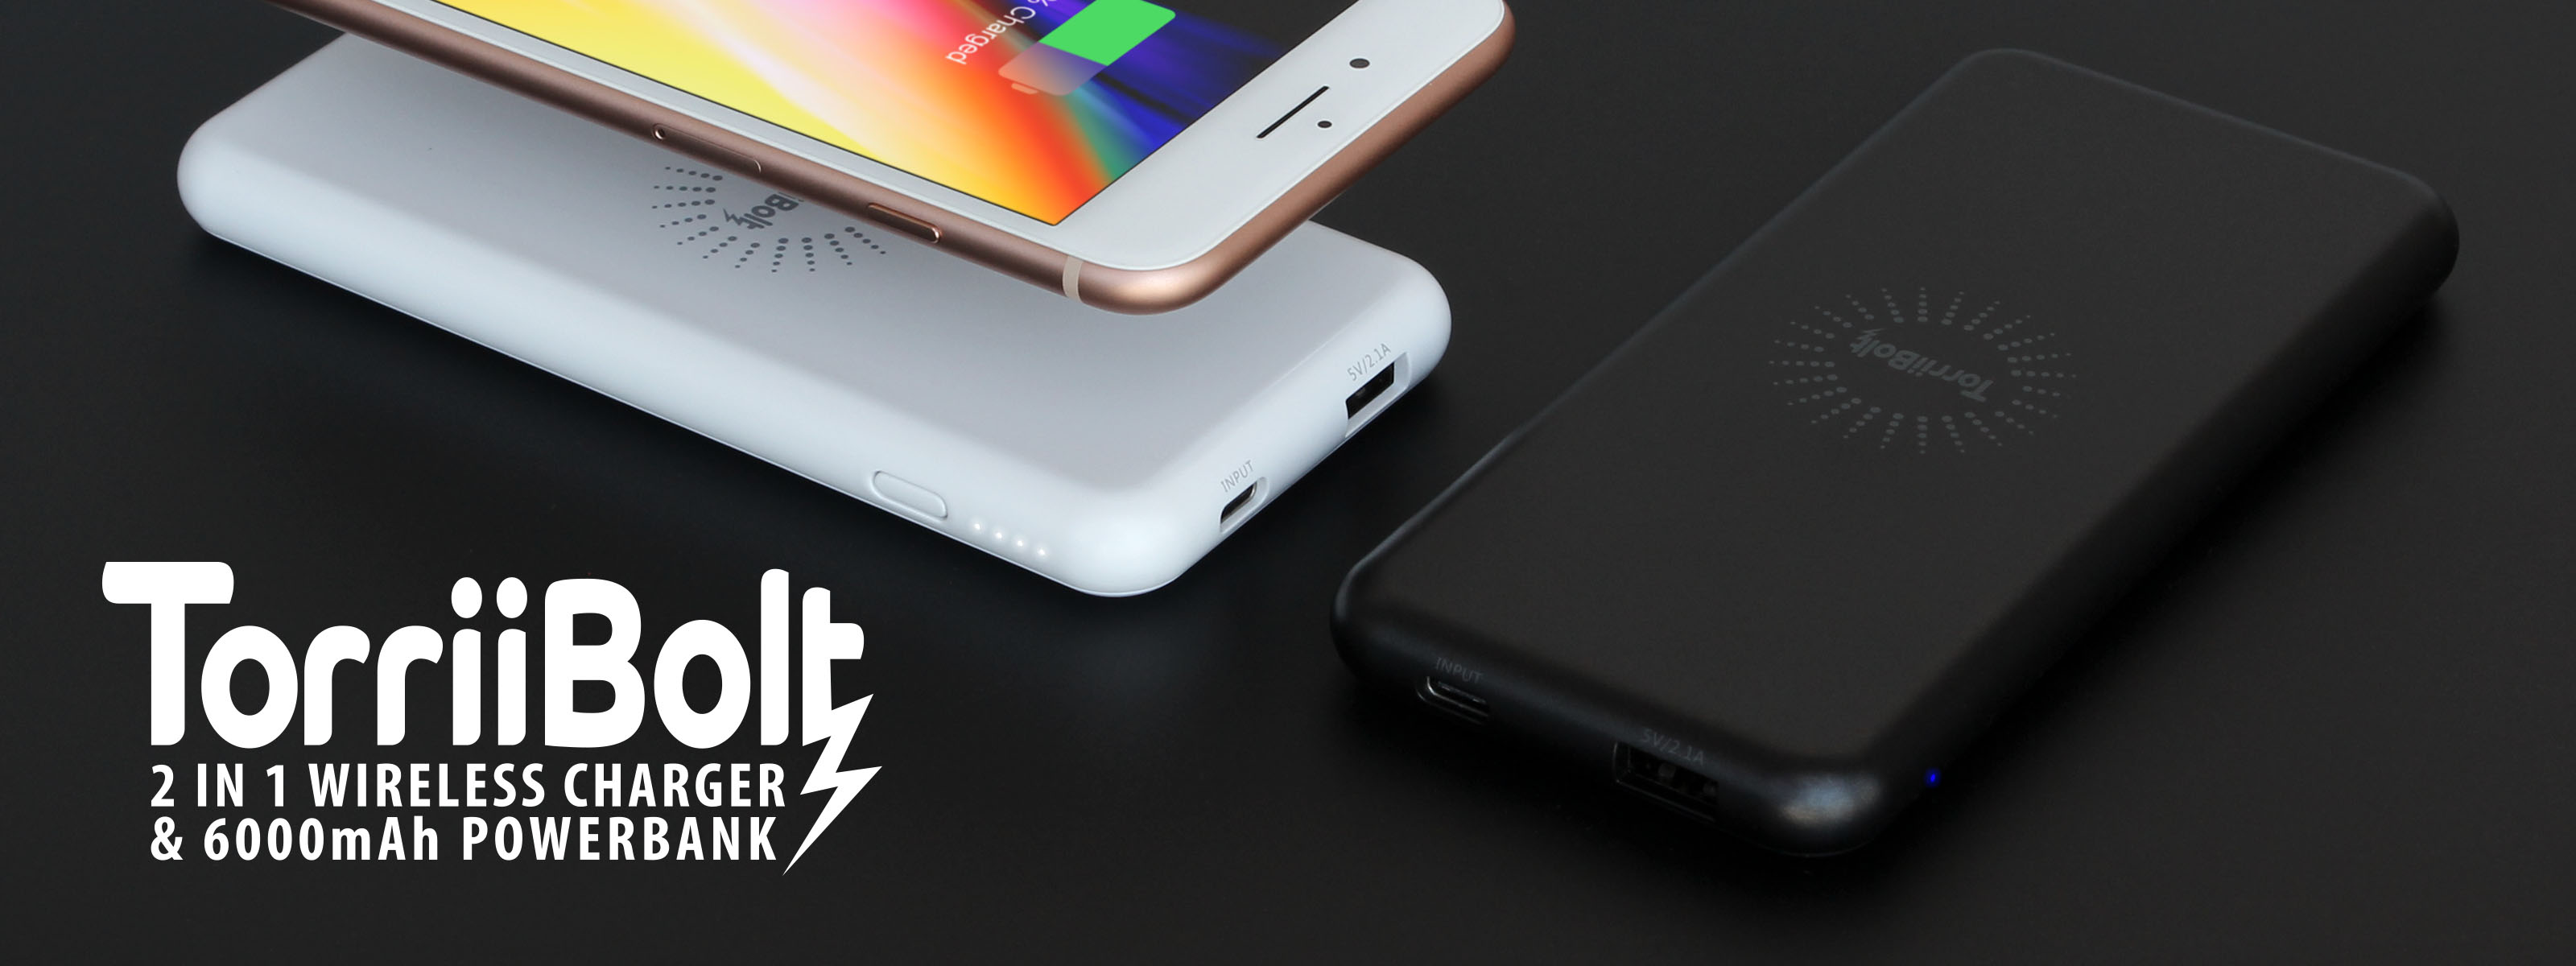 Torrii introduces TorriiBolt 2 in 1 Wireless Charger & 6000mAh Powerbank